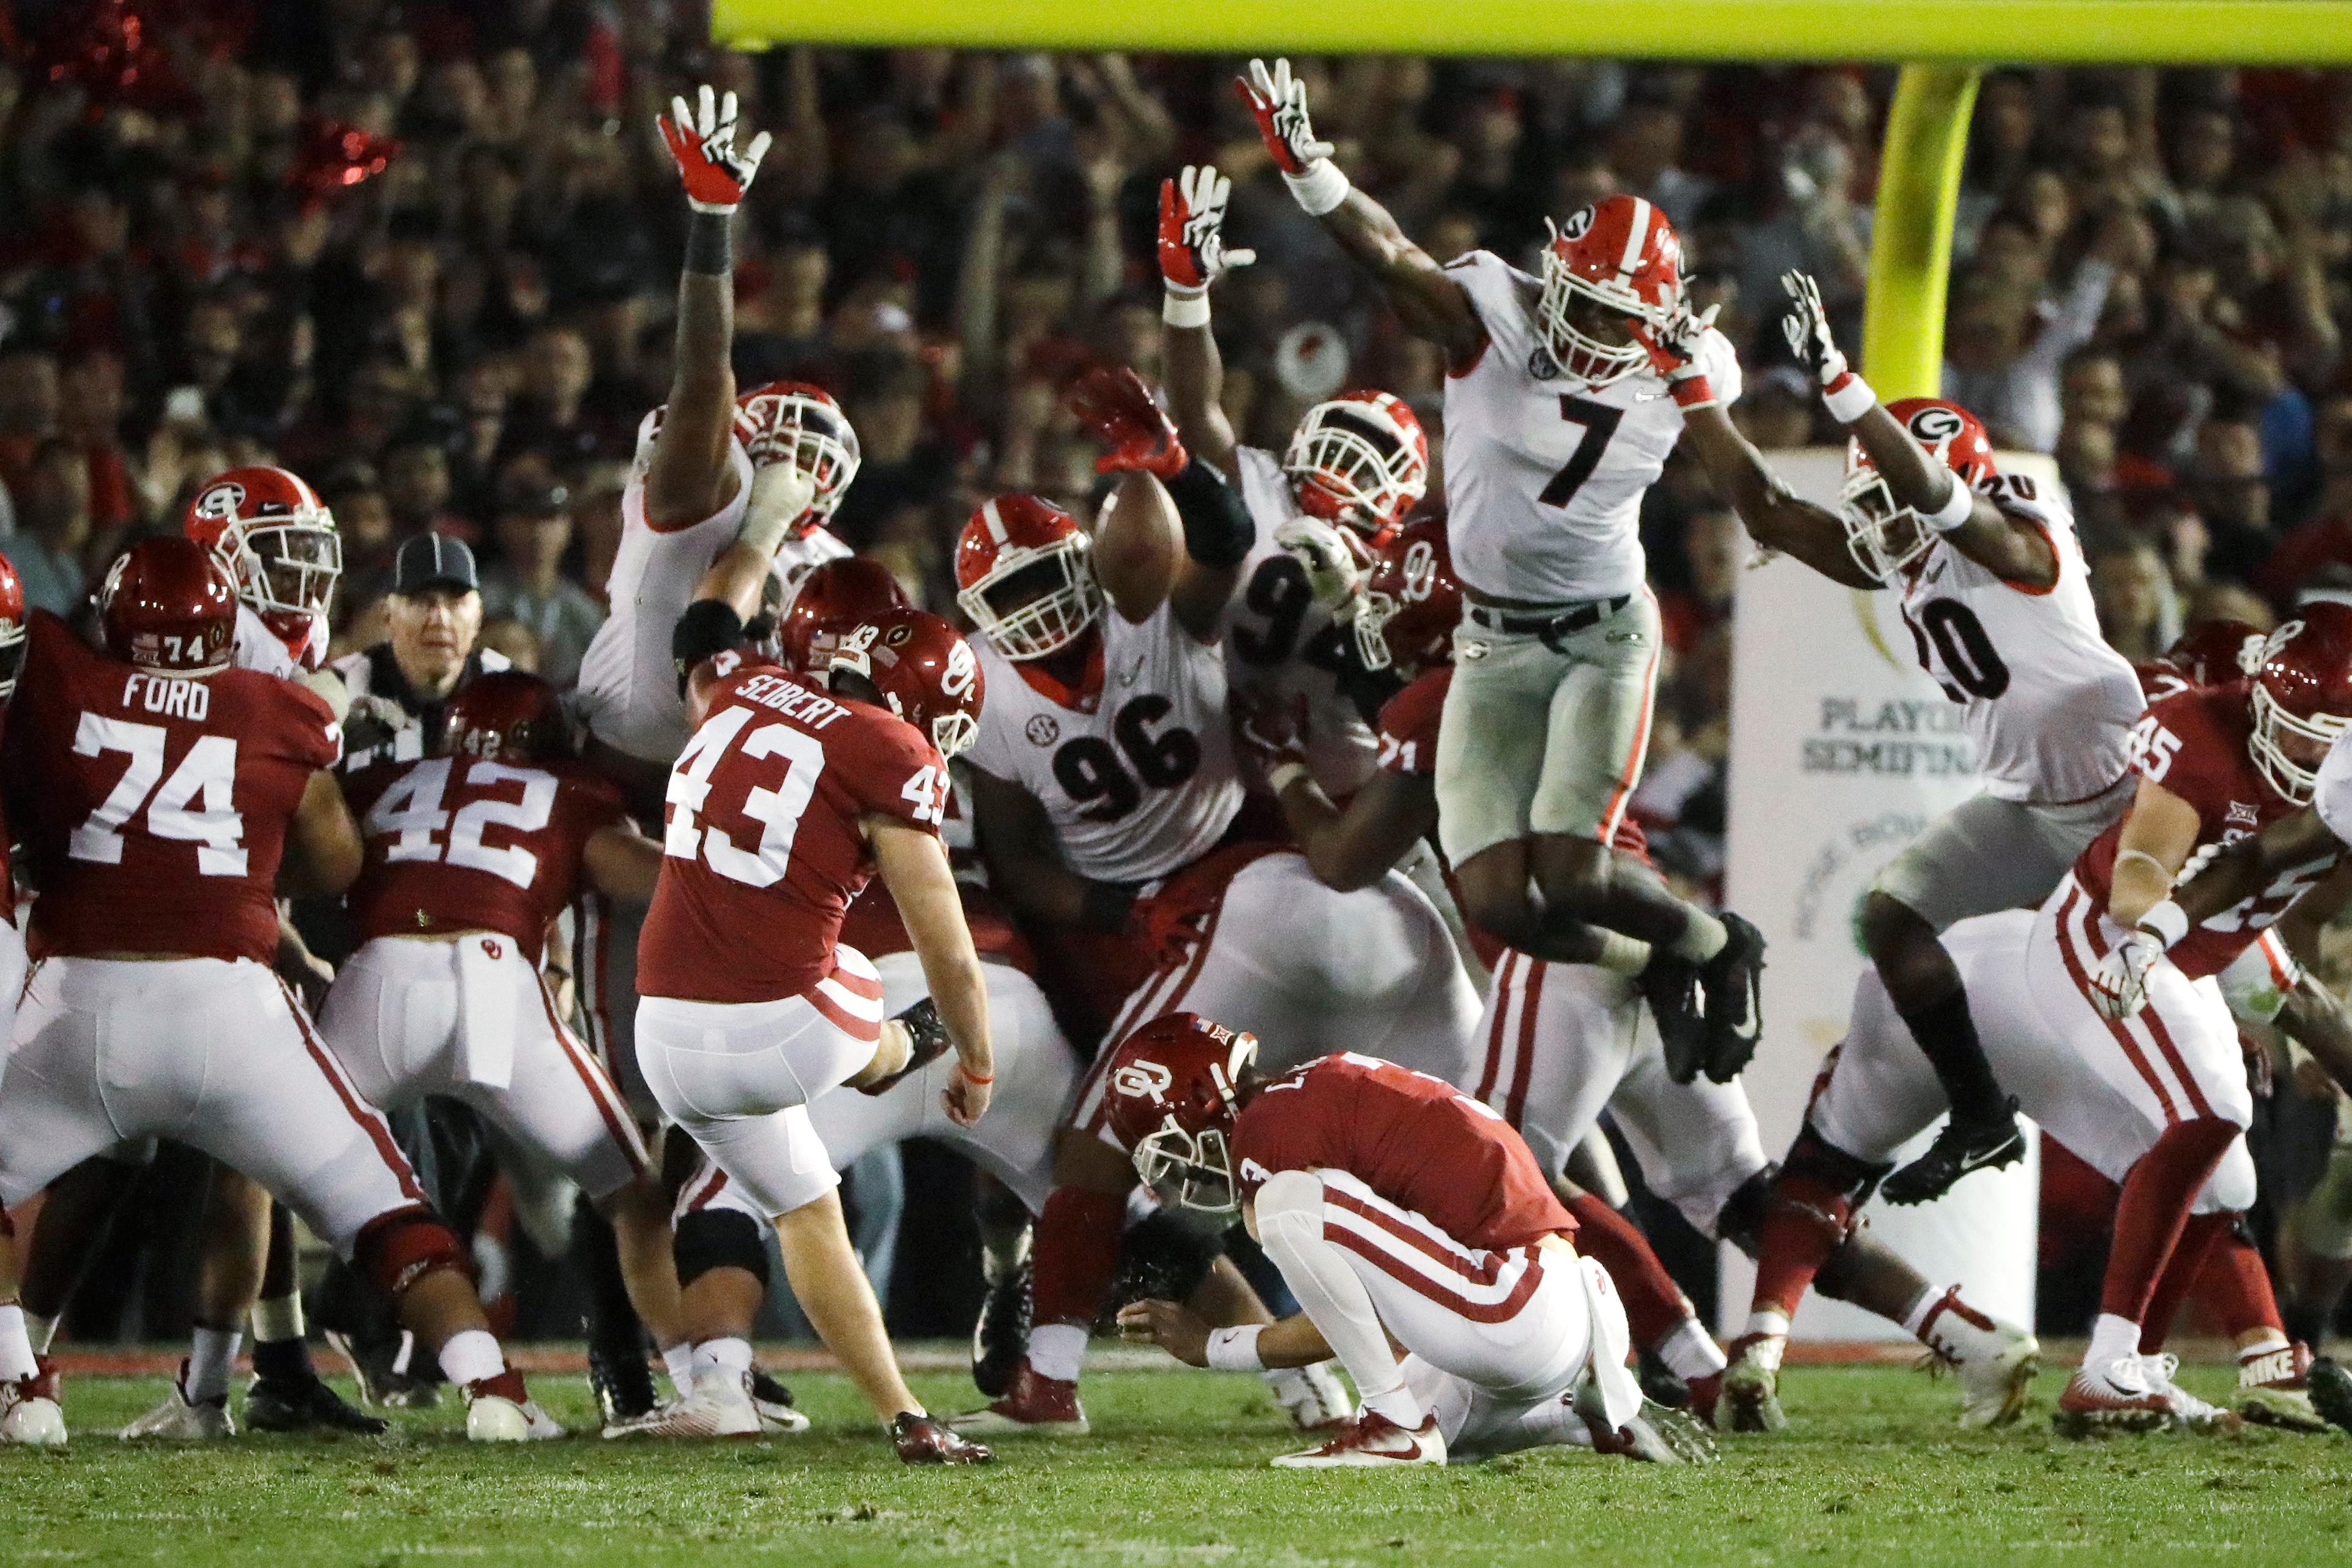 Georgia linebacker Lorenzo Carter (7) blocks a field goal attempted by Oklahoma kicker Austin Seibert (43) during overtime in the Rose Bowl NCAA college football game, Monday, Jan. 1, 2018, in Pasadena, Calif. Georgia won 54-48. (AP Photo/Gregory Bull)